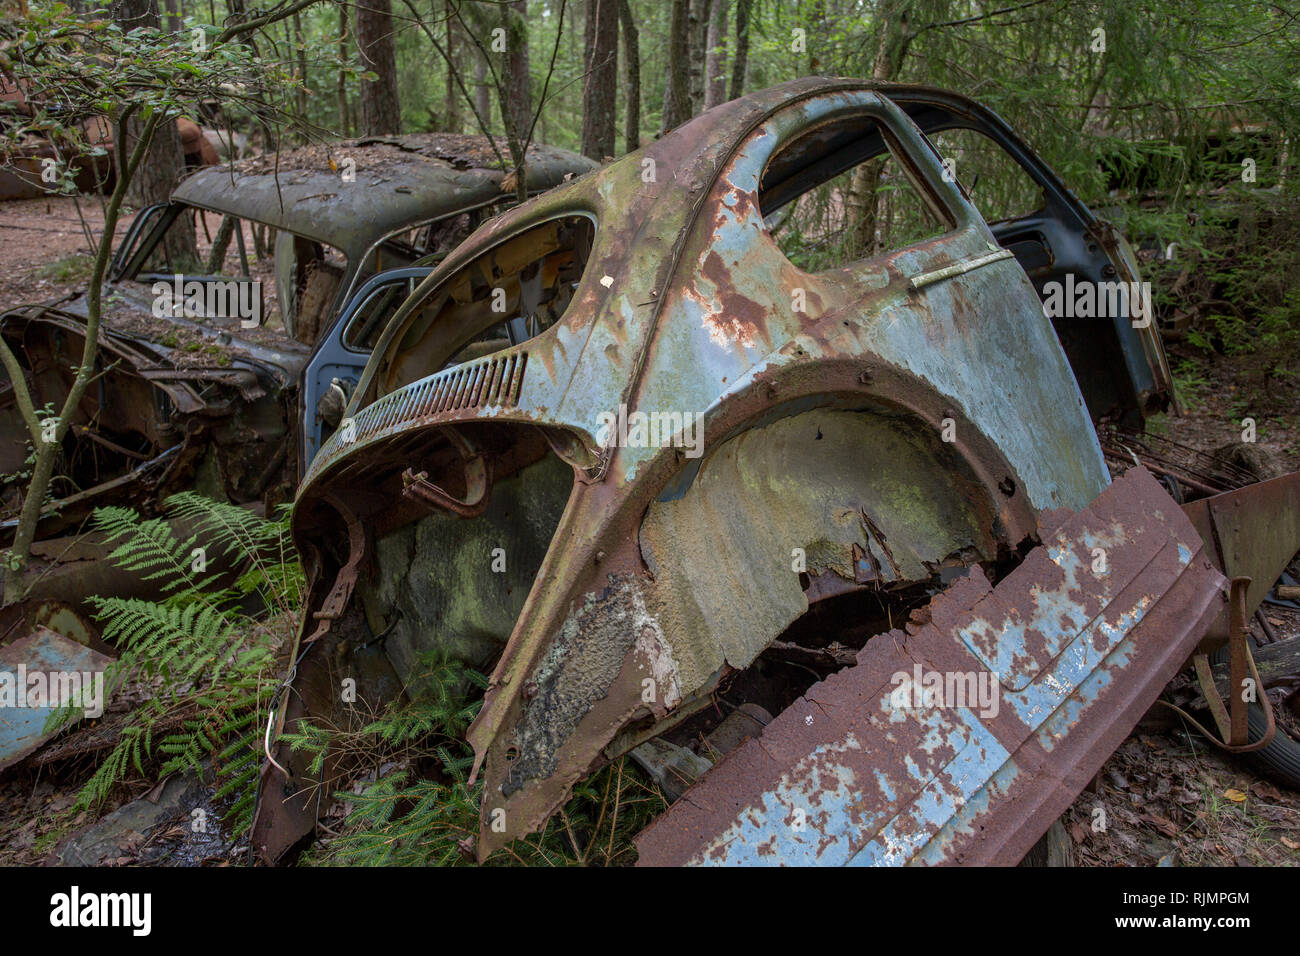 Old vintage rusted cars at a scrap yard at a forest in Ryd, Kyrko Mosse in Sweden - Stock Image